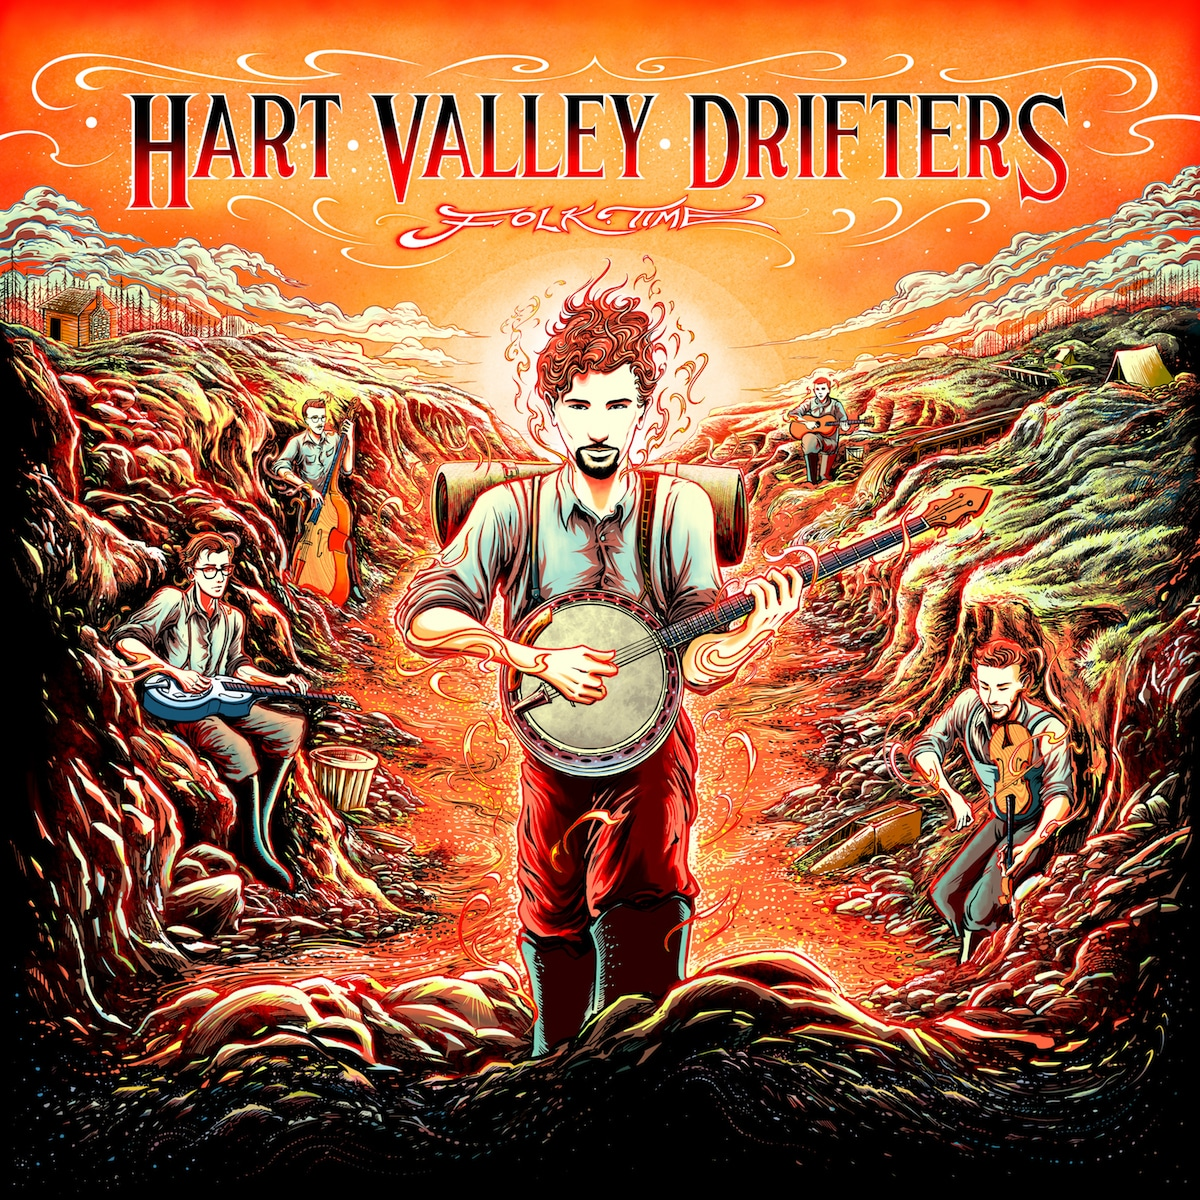 Hart-Valley-Drifters-Front-Cover-Final-small